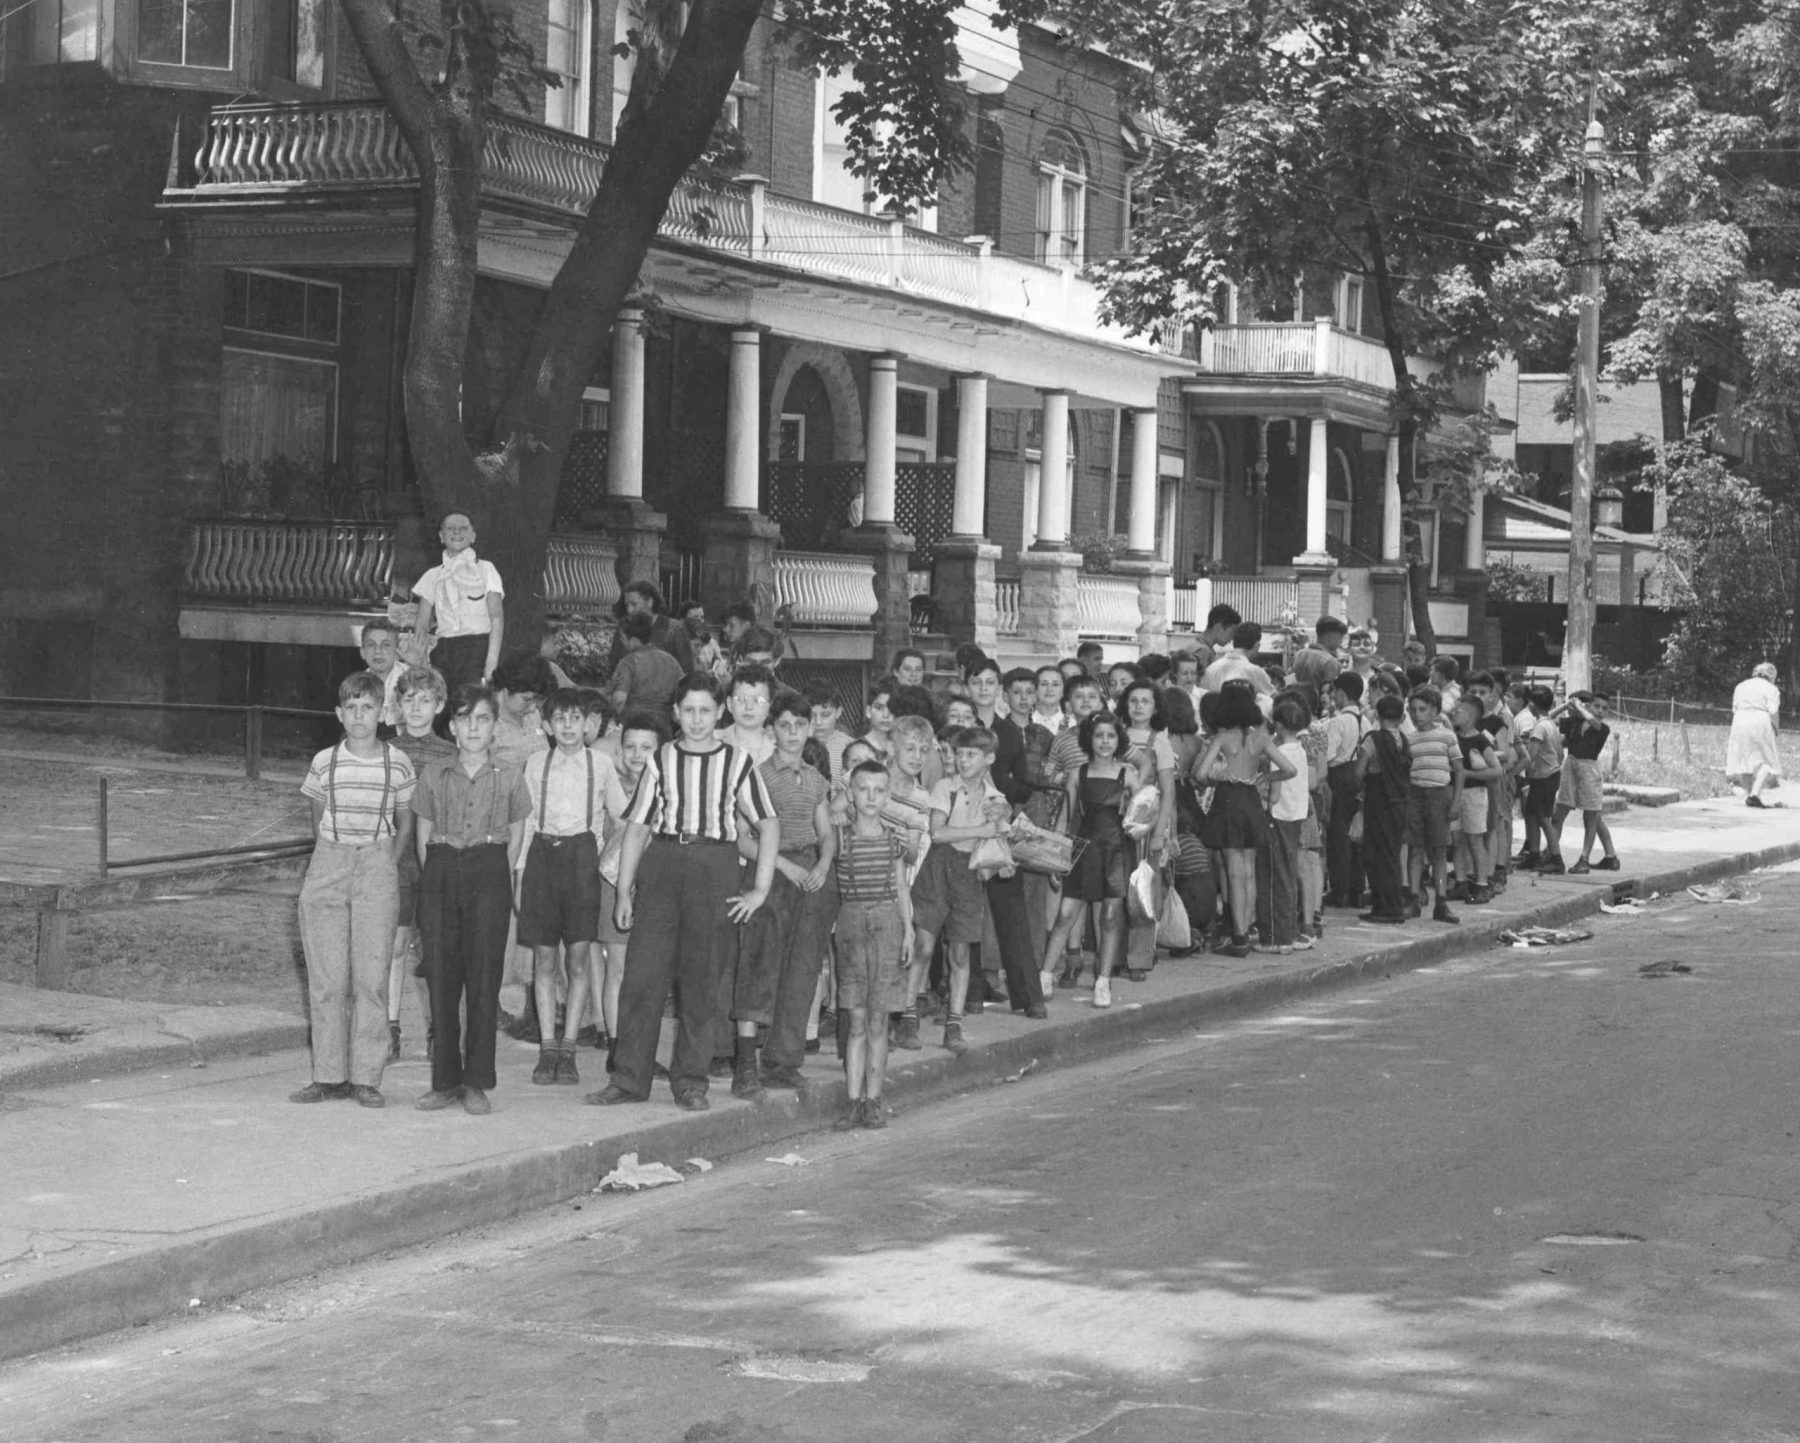 Children of the YM-YWHA on Major Street, ca. 1950. The YM-YWHA used a building on Major Street for their after-school children's programs. Although the YM-YWHA had its own athletic building at 15 Brunswick Avenue, activities were still scattered across a few other buildings in the area to meet programming needs.   OJA, fonds 61, series 2-2, item 38.